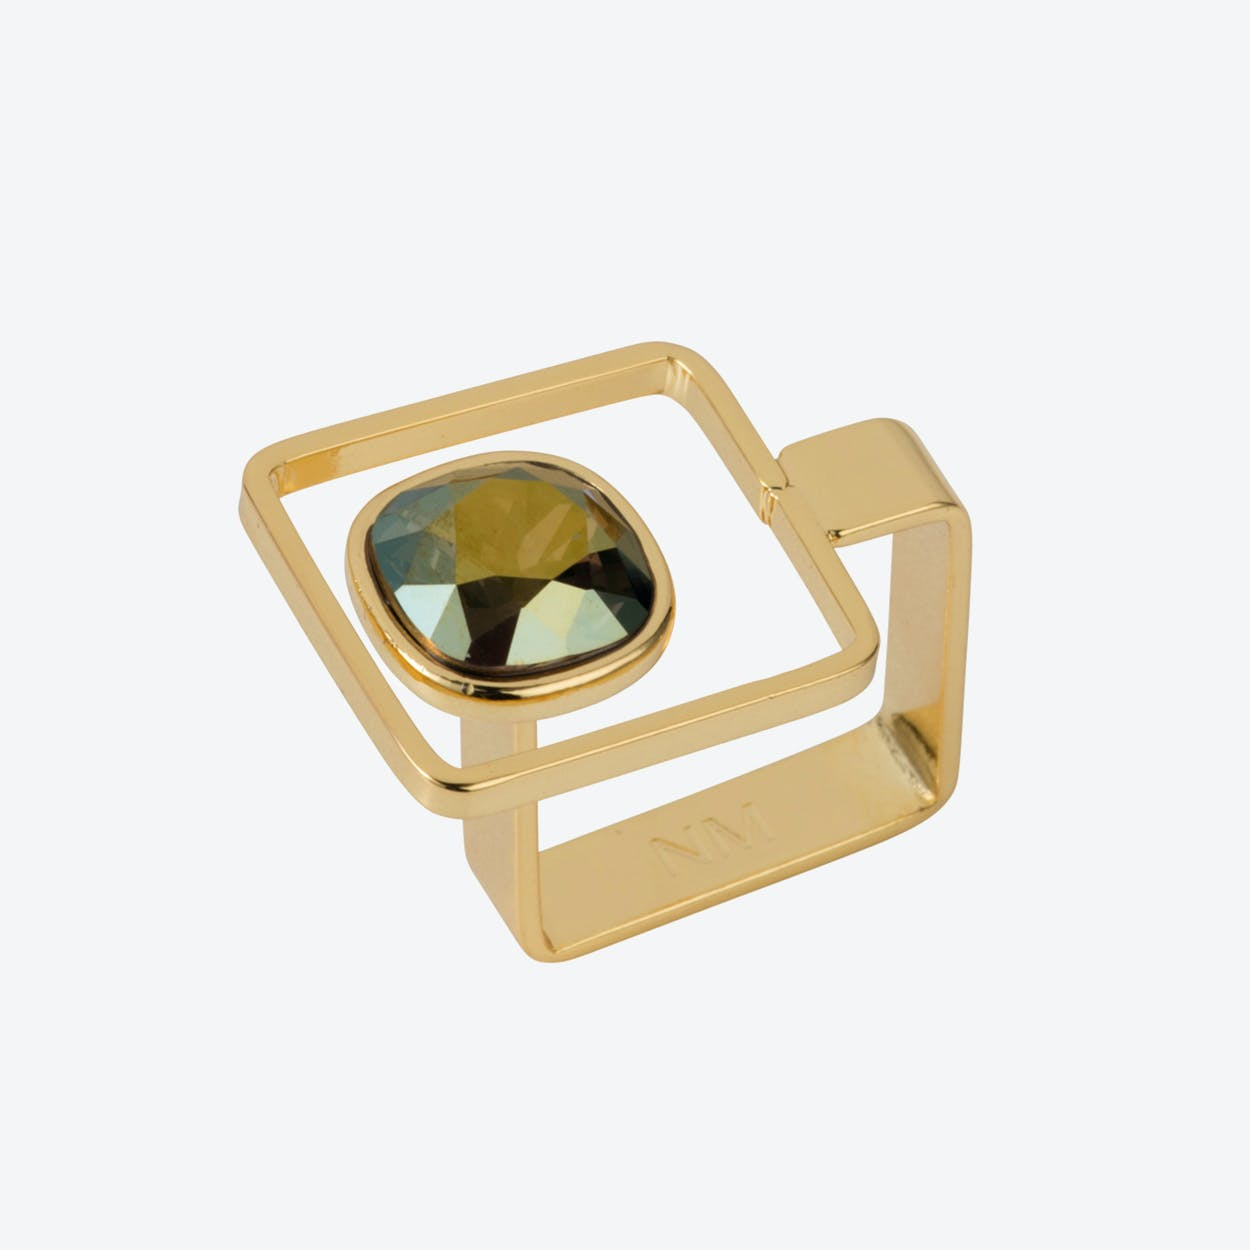 Square Frame Ring – Gold with Iridescent Green